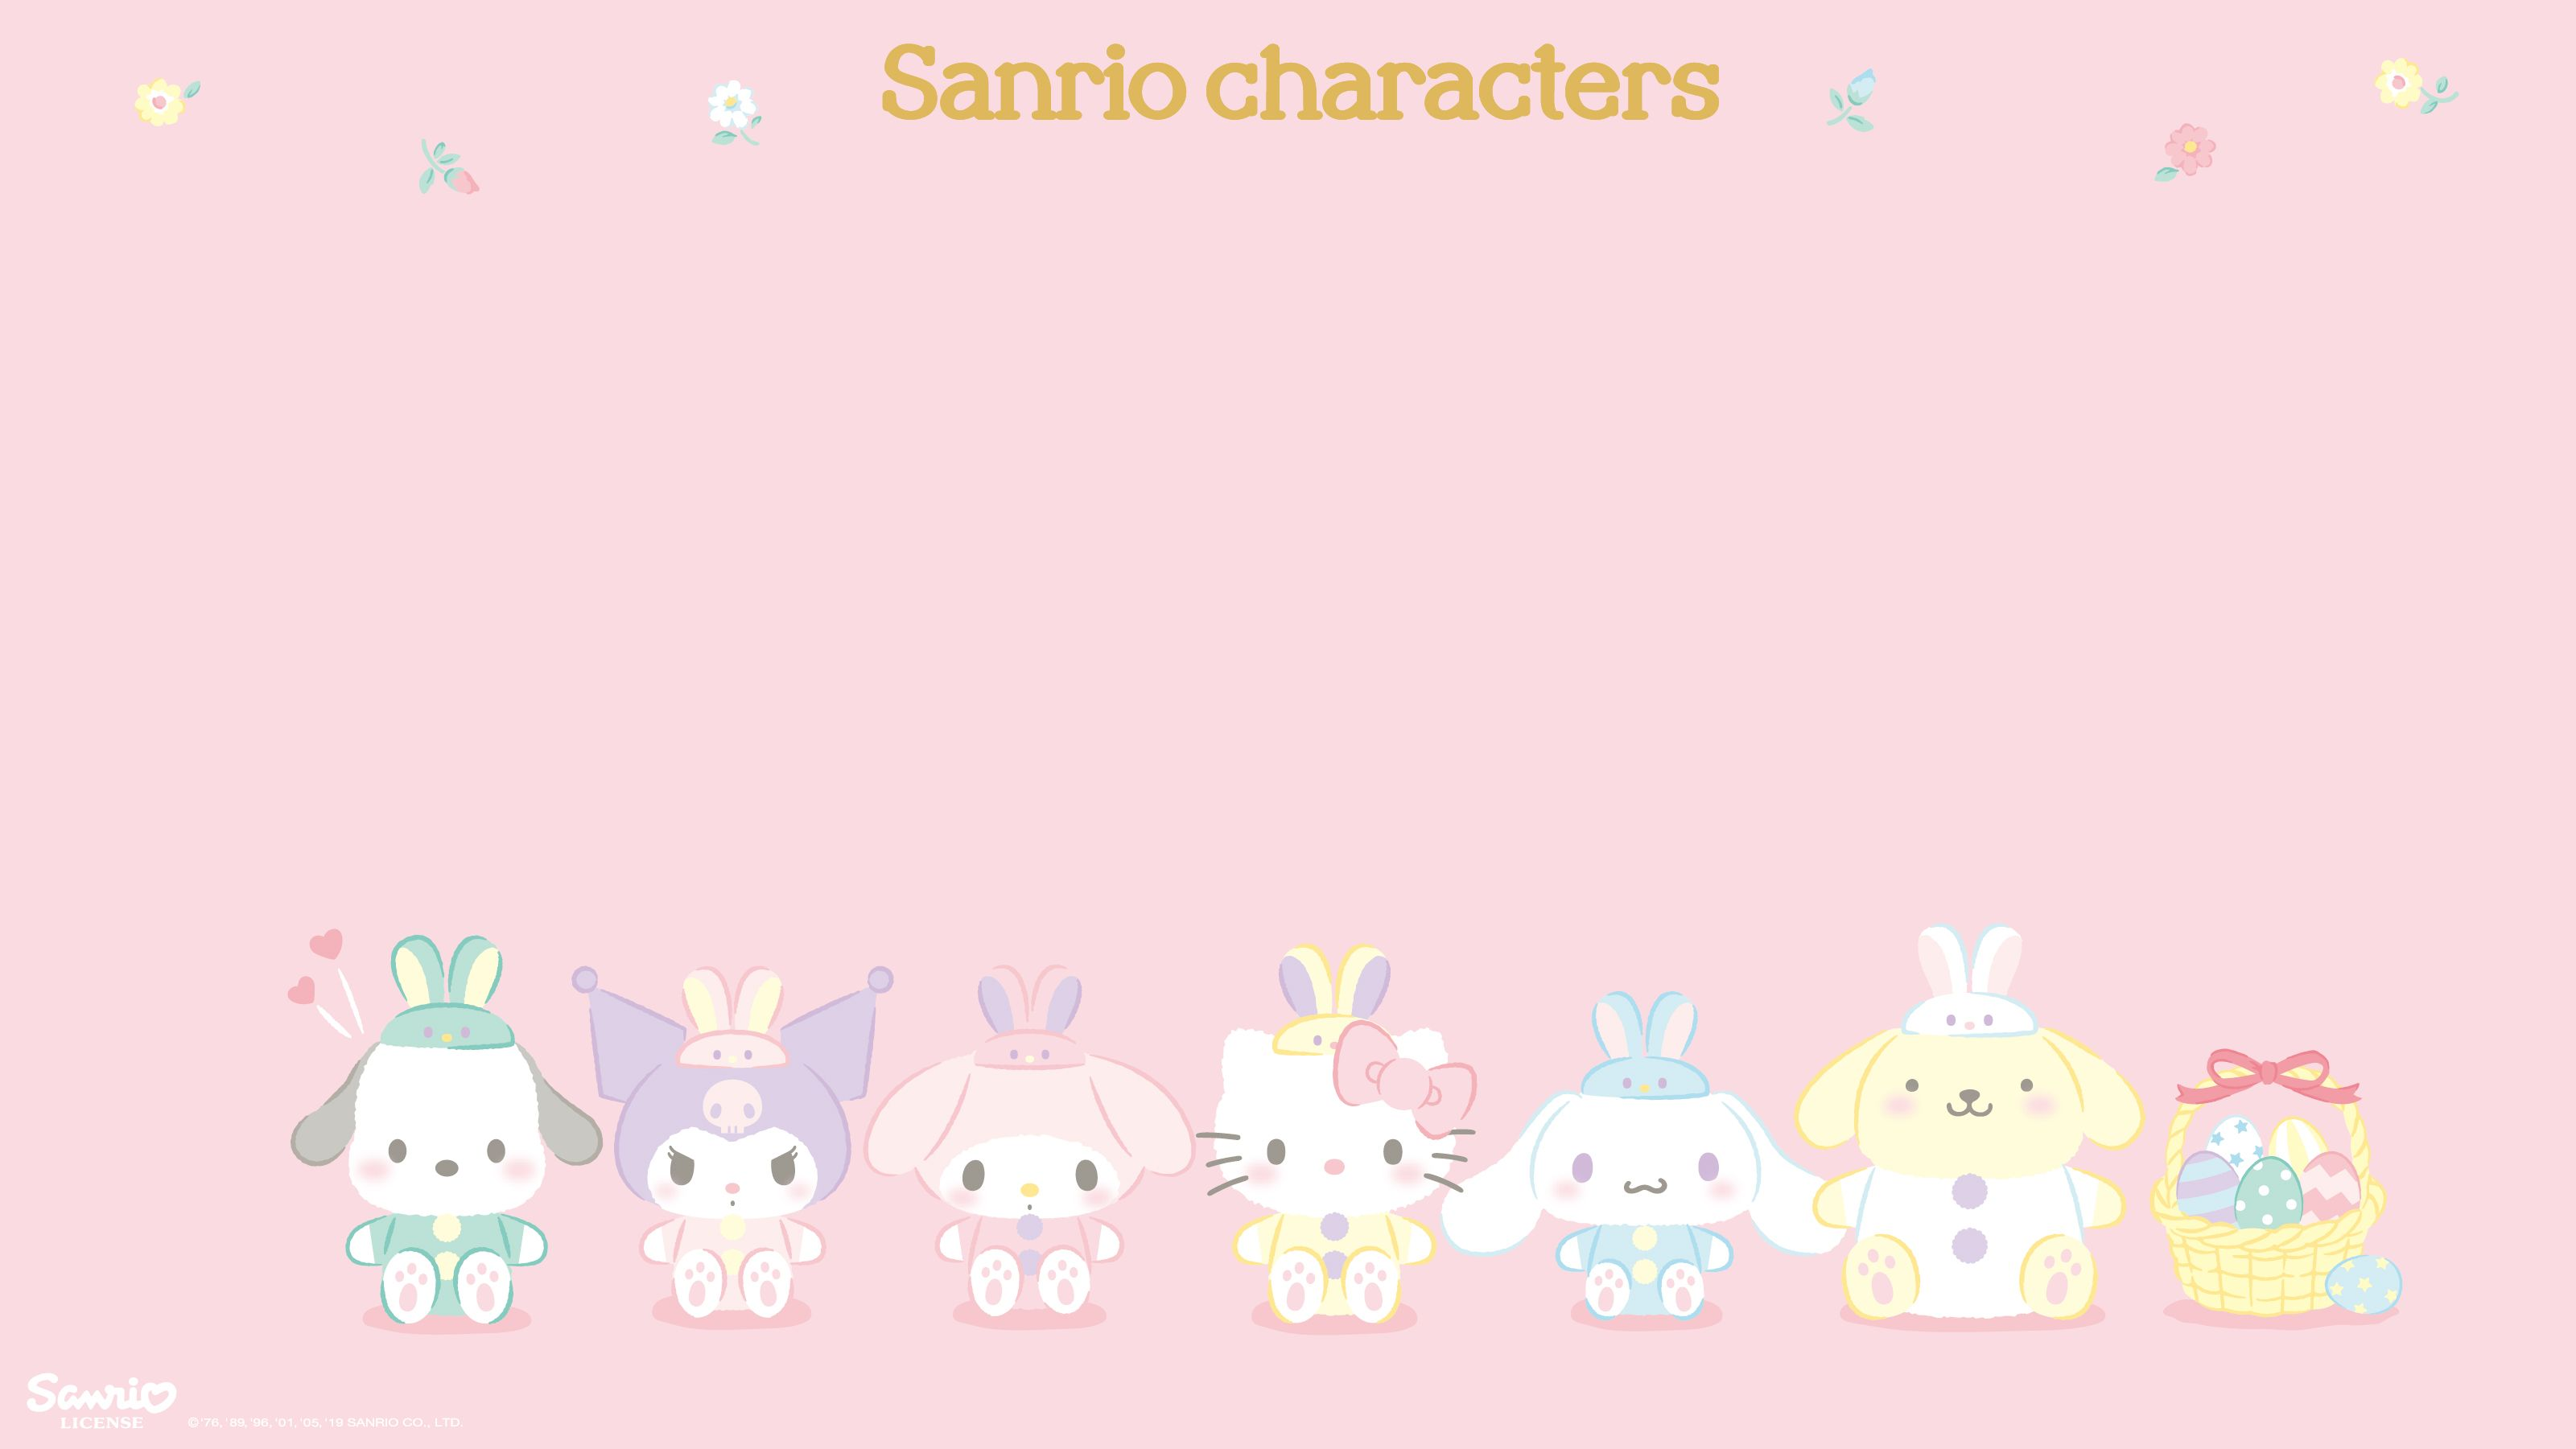 3200x1800 201905 Sanrio Wallpaper Hello Kitty Iphone Wallpaper Hello Kitty Backgrounds